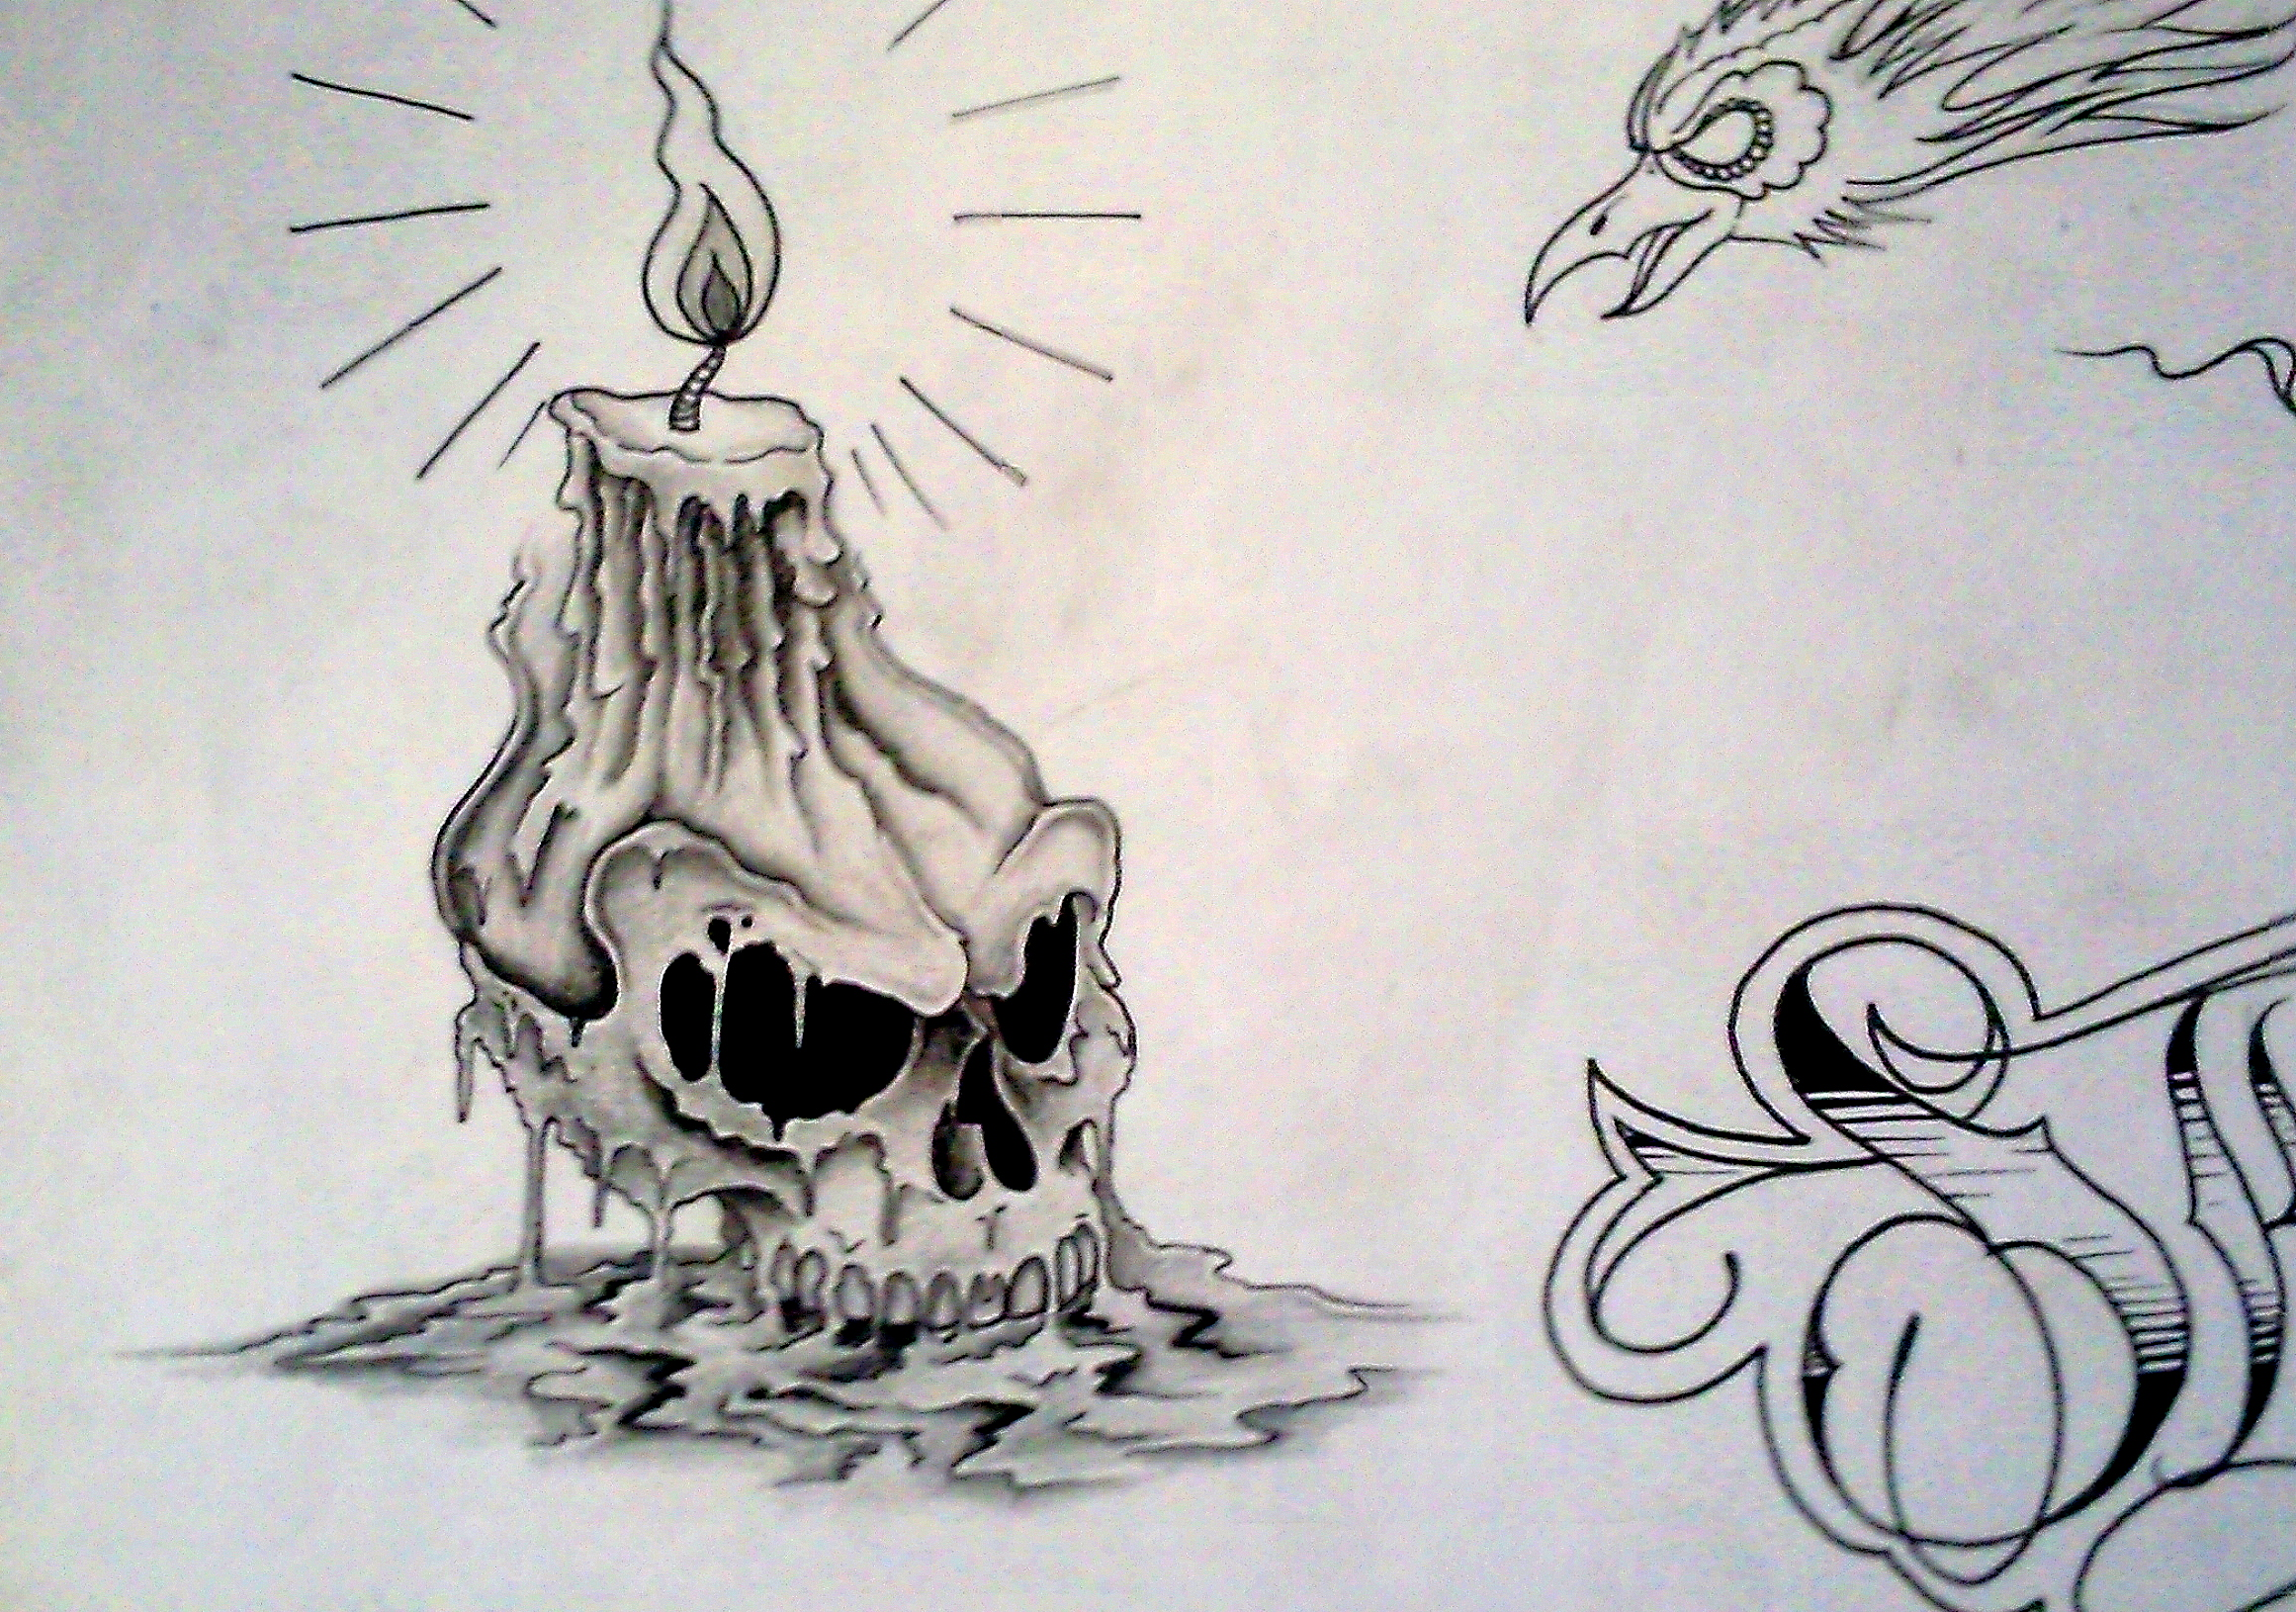 Melting Candle Skull Tattoo Design